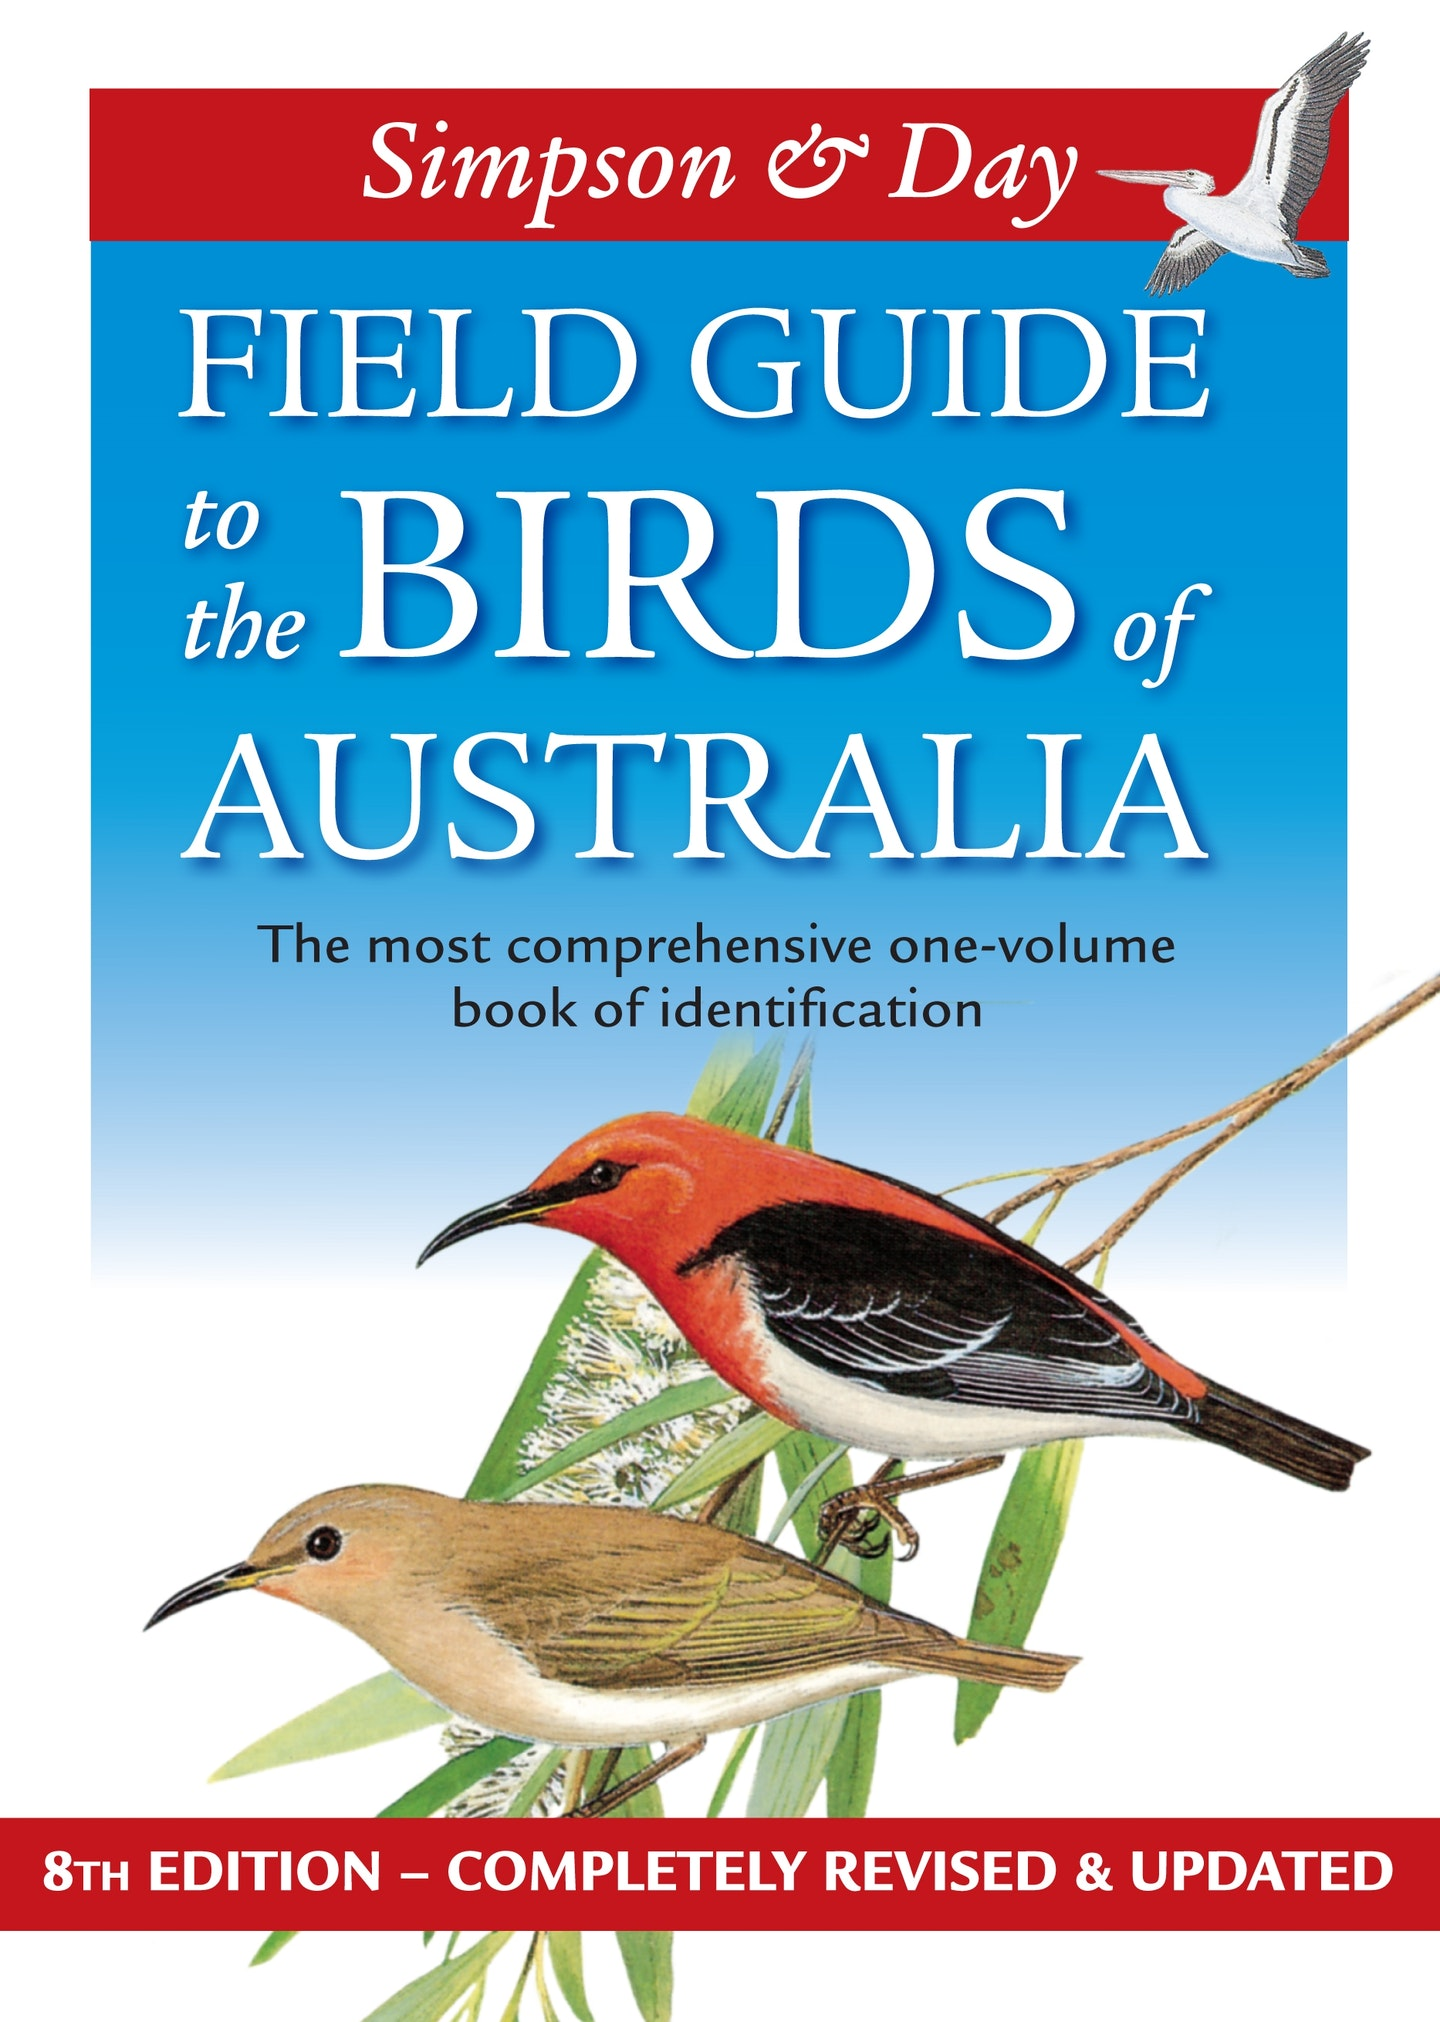 Book Covers For School Australia ~ Field guide to the birds of australia th edition